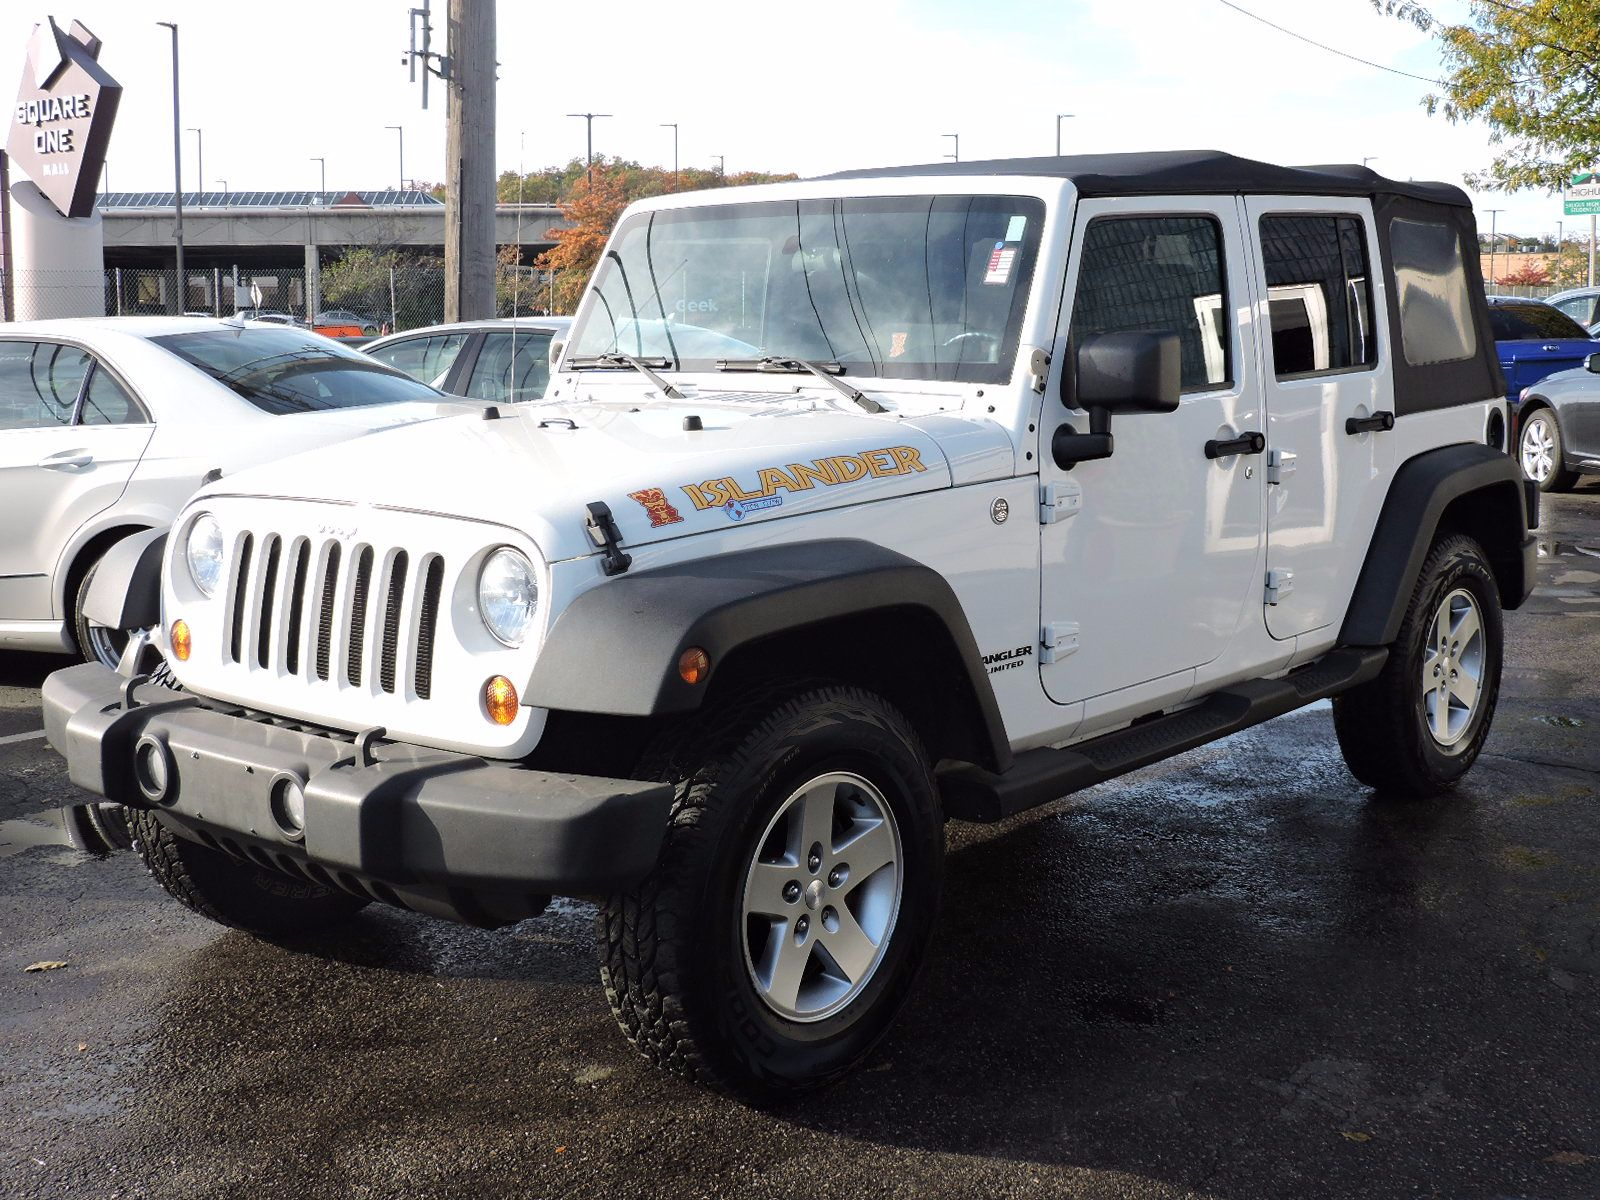 2010 Jeep Wrangler Unlimited - All Wheel Drive - Unlimited - Islander  Edition at Saugus Auto Mall